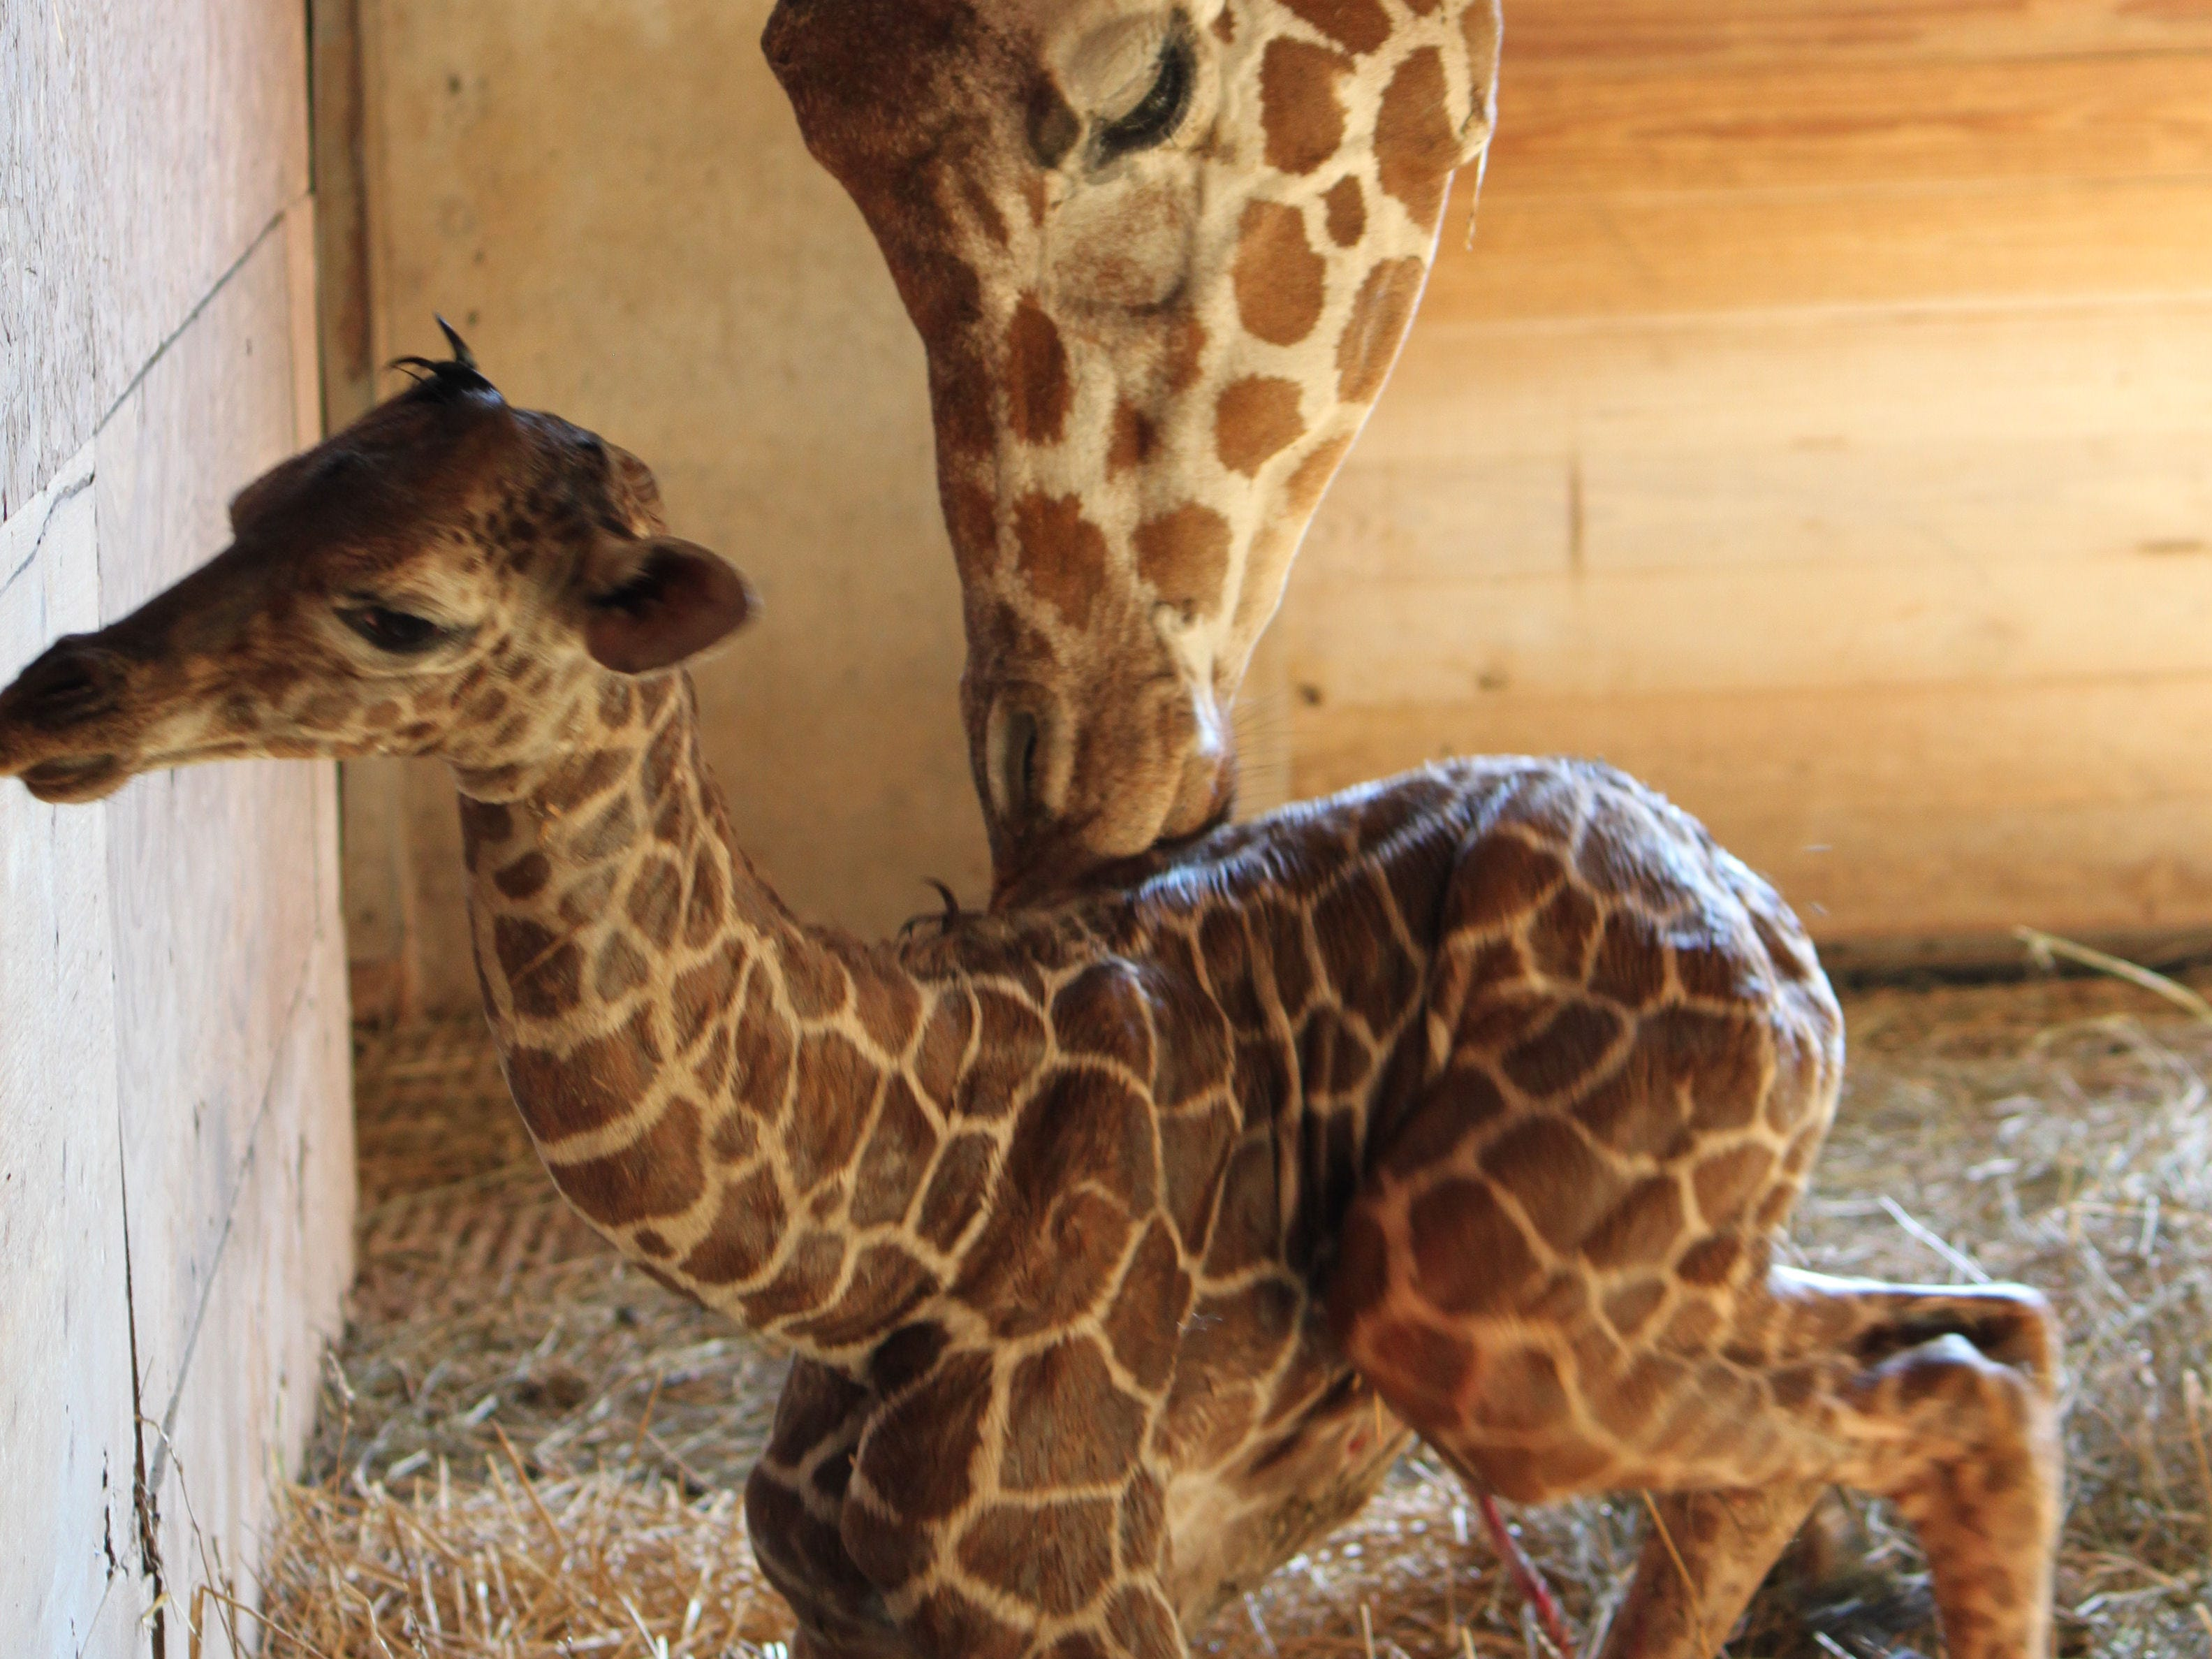 Mkia gets a nuzzle from her mother, Makena, after she was born at Binder Park Zoo in 2012.